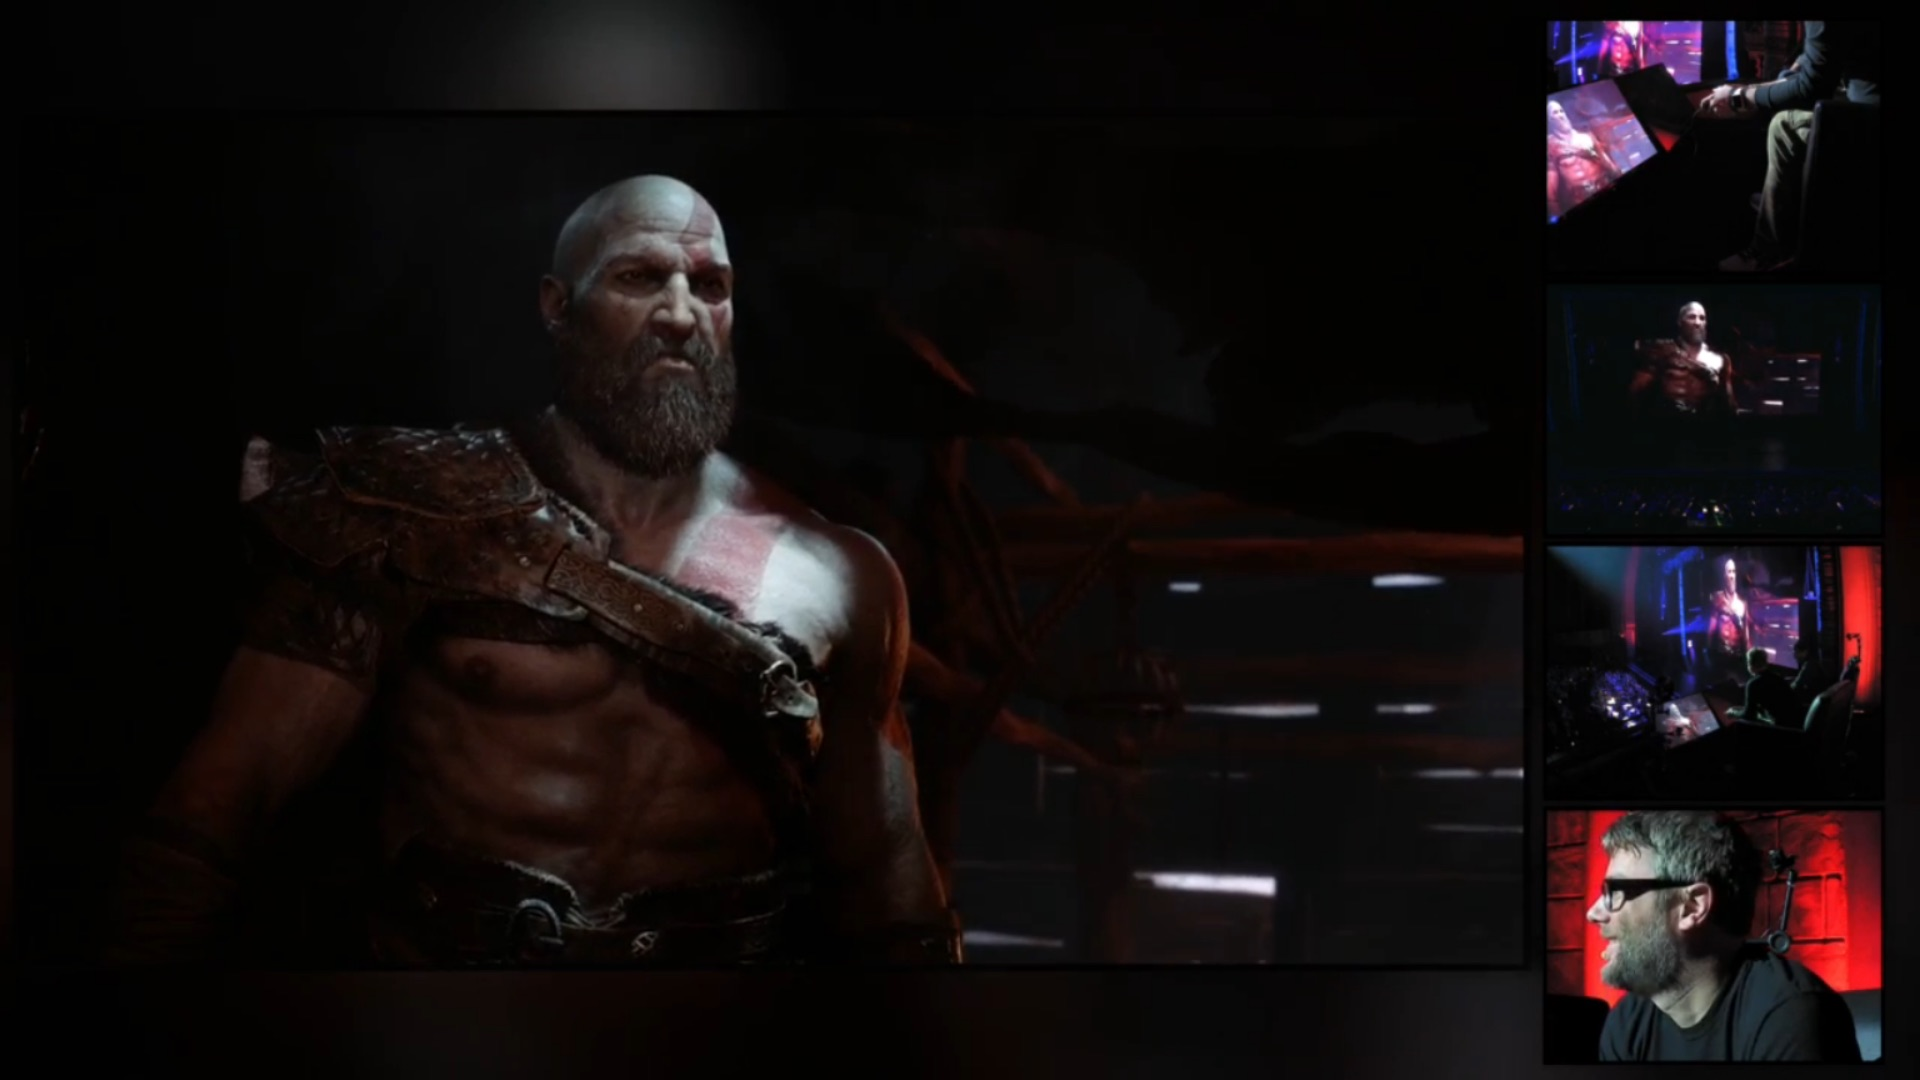 God Of War Takes A More Serious Fatherly Tone In Upcoming